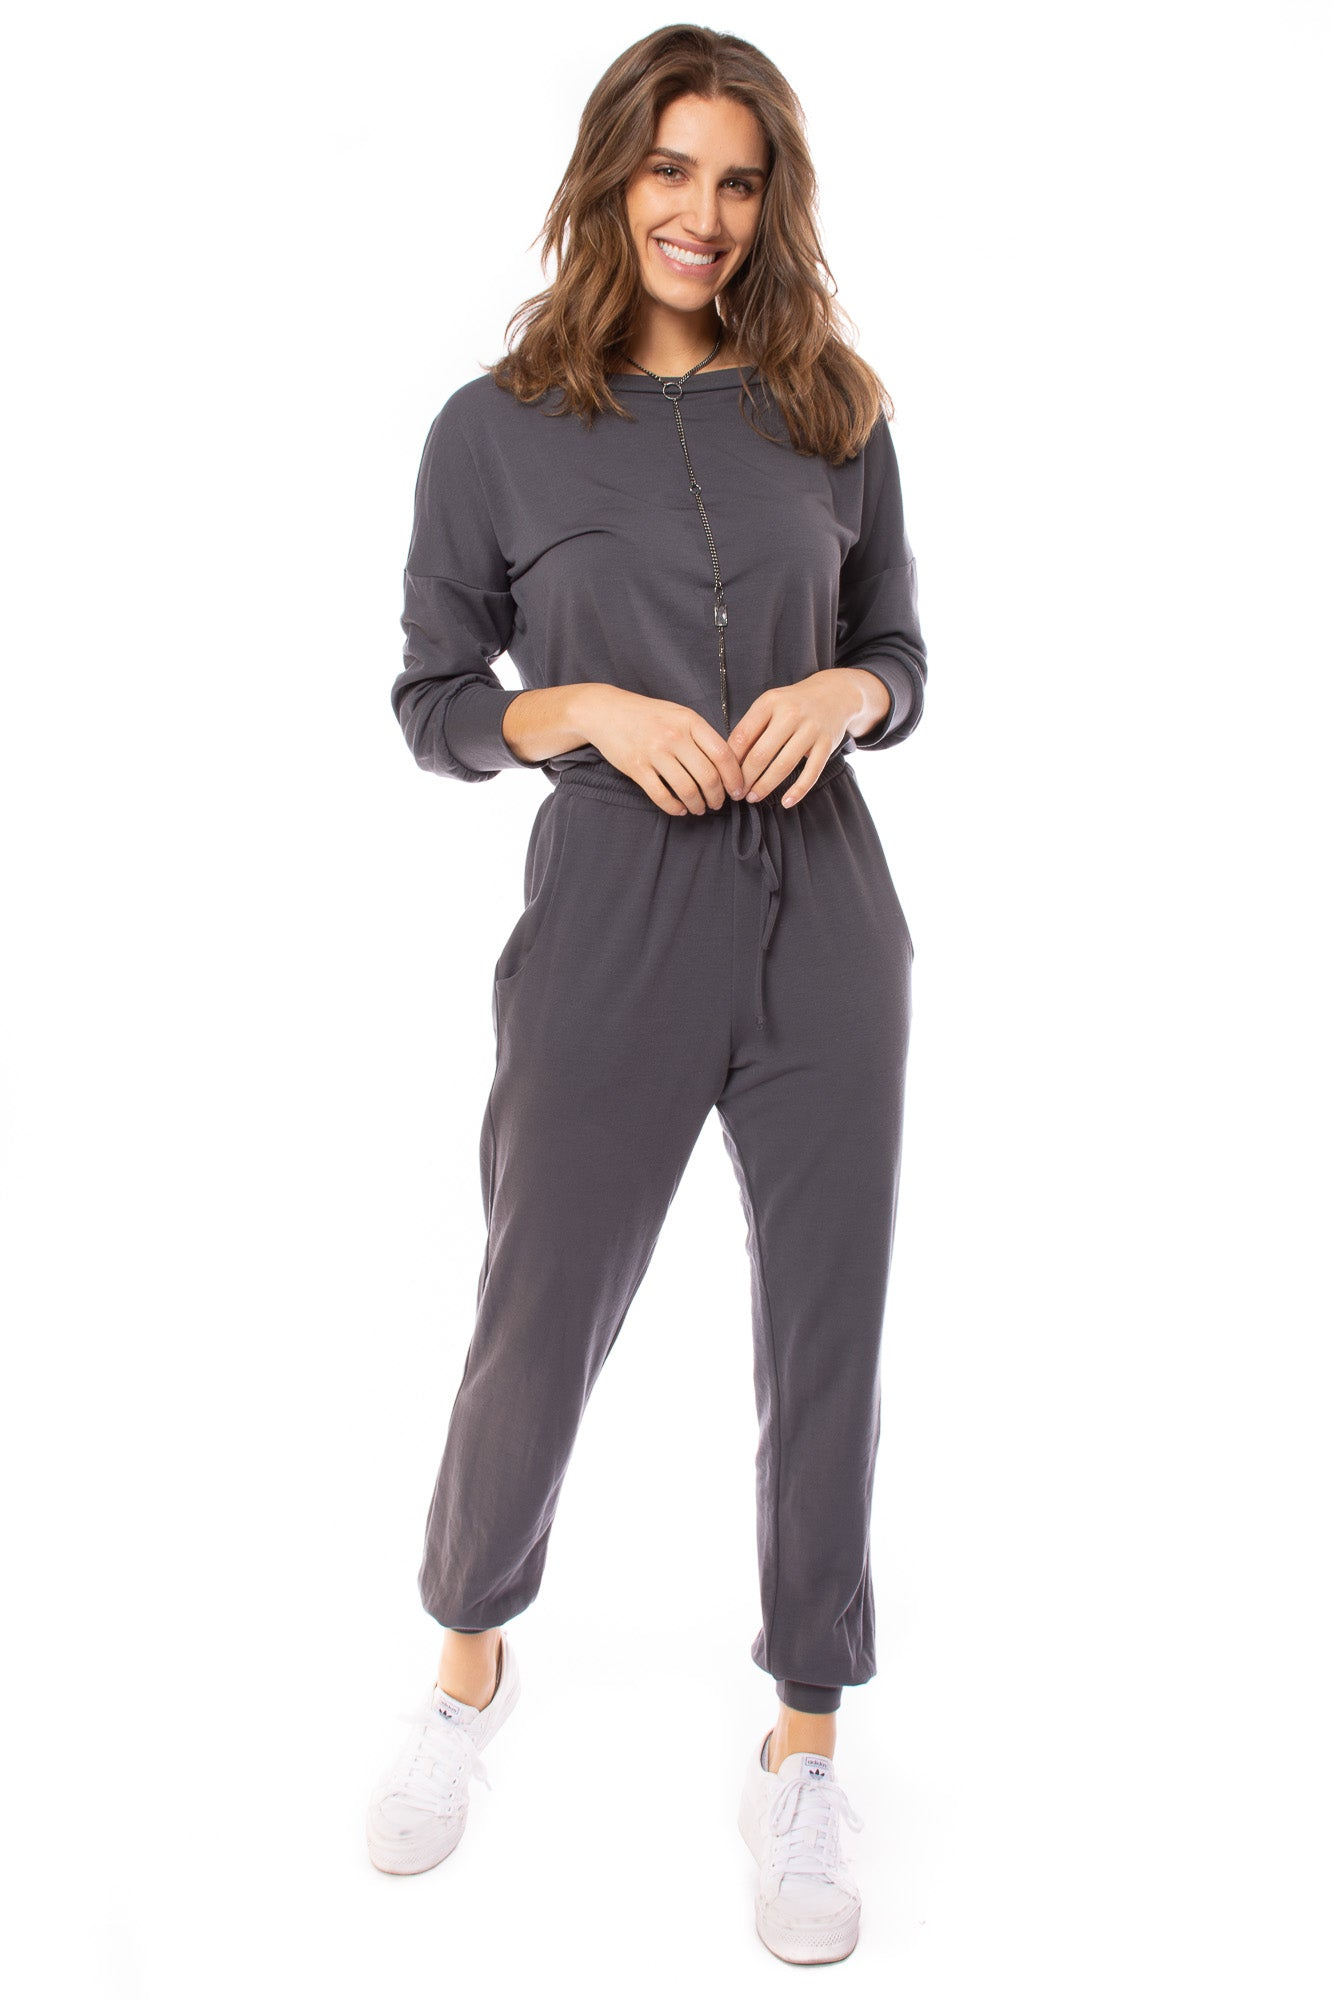 Solid Grey Drawstring Jumper (Style PS-492, Charcoal) by Veronica M.